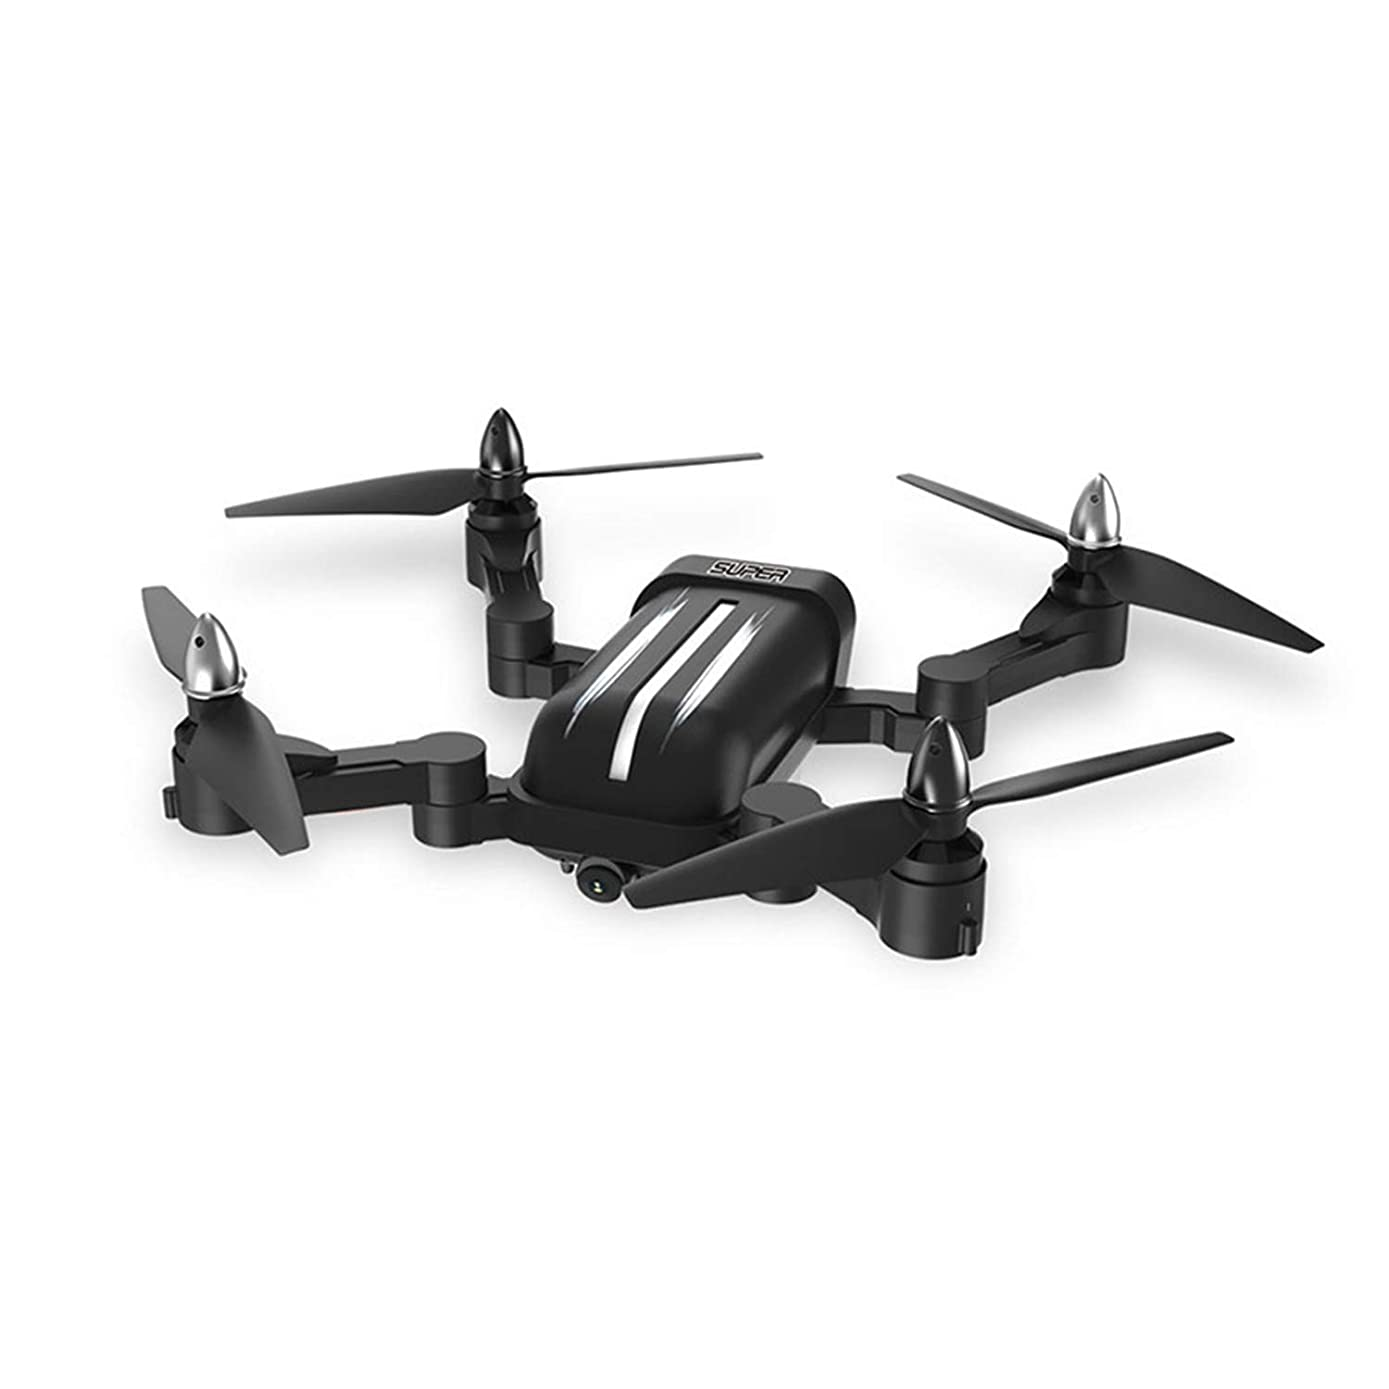 Sgkhz Brushless Quadcopter, with 1080P HD Camera RC Helicopter, Quadcopter Foldable Drone GPS Drone Kids Gift